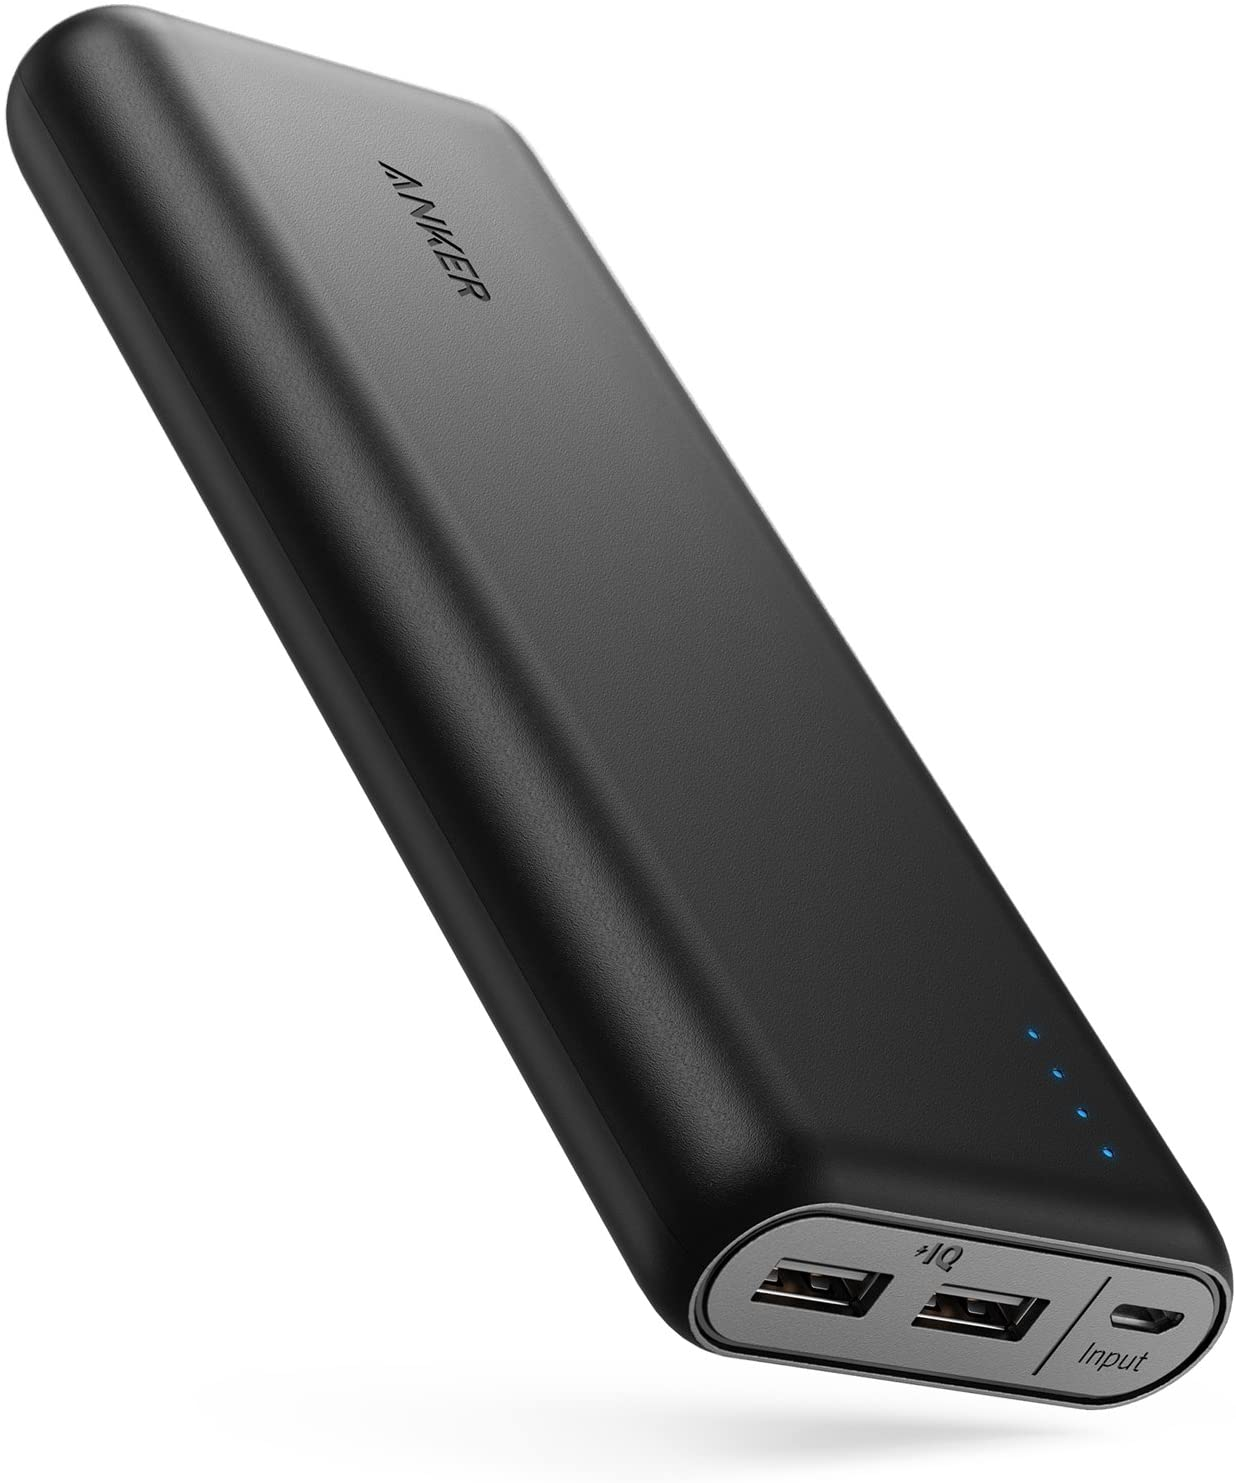 Anker PowerCore 20100mAh Portable Charger